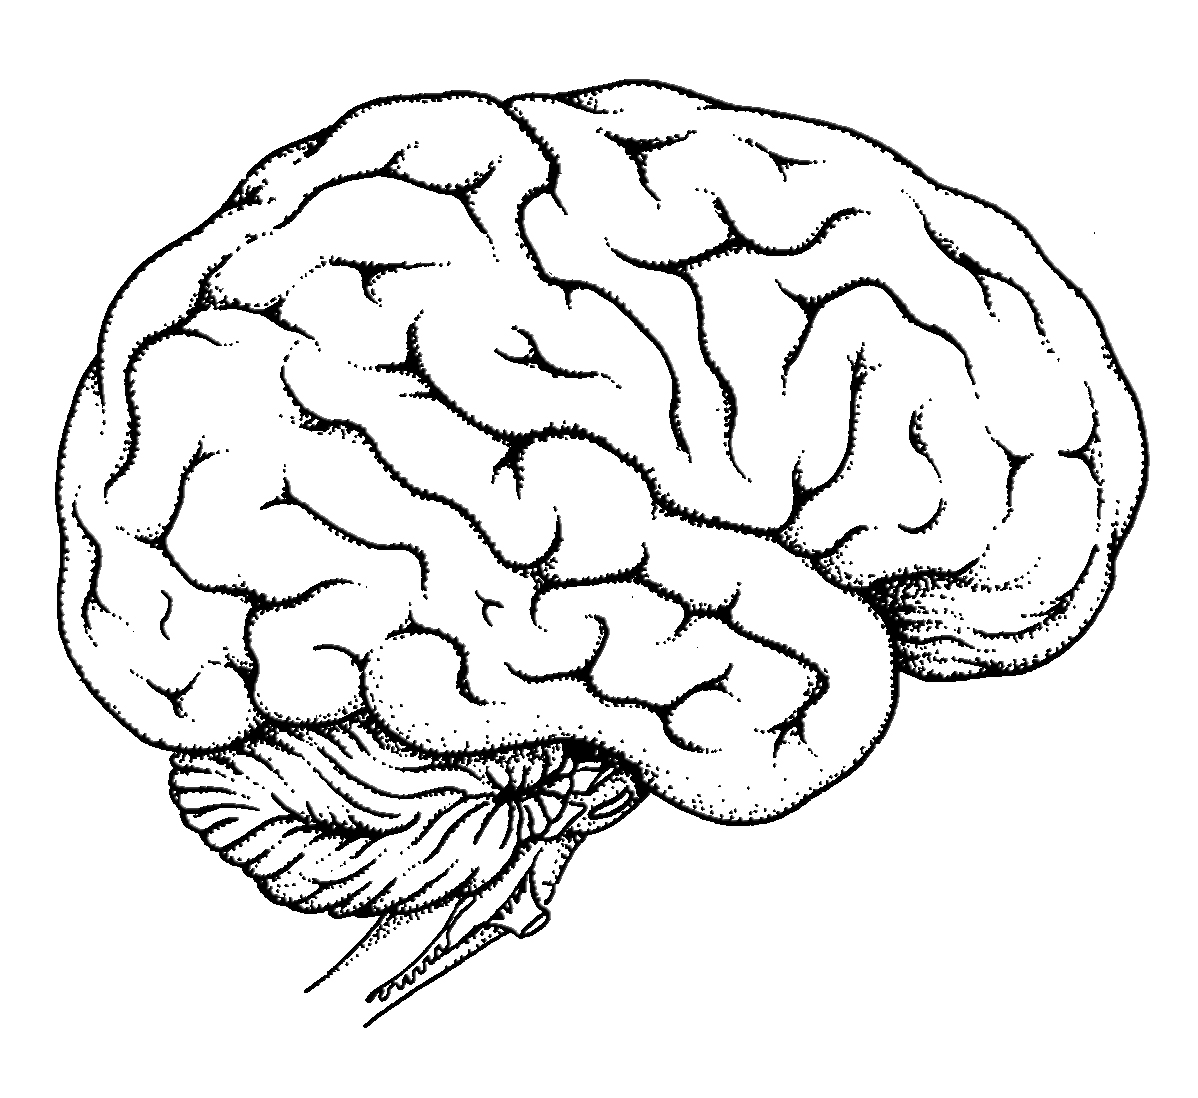 1198x1098 Brain Coloring Pages To Print Brain Coloring Page